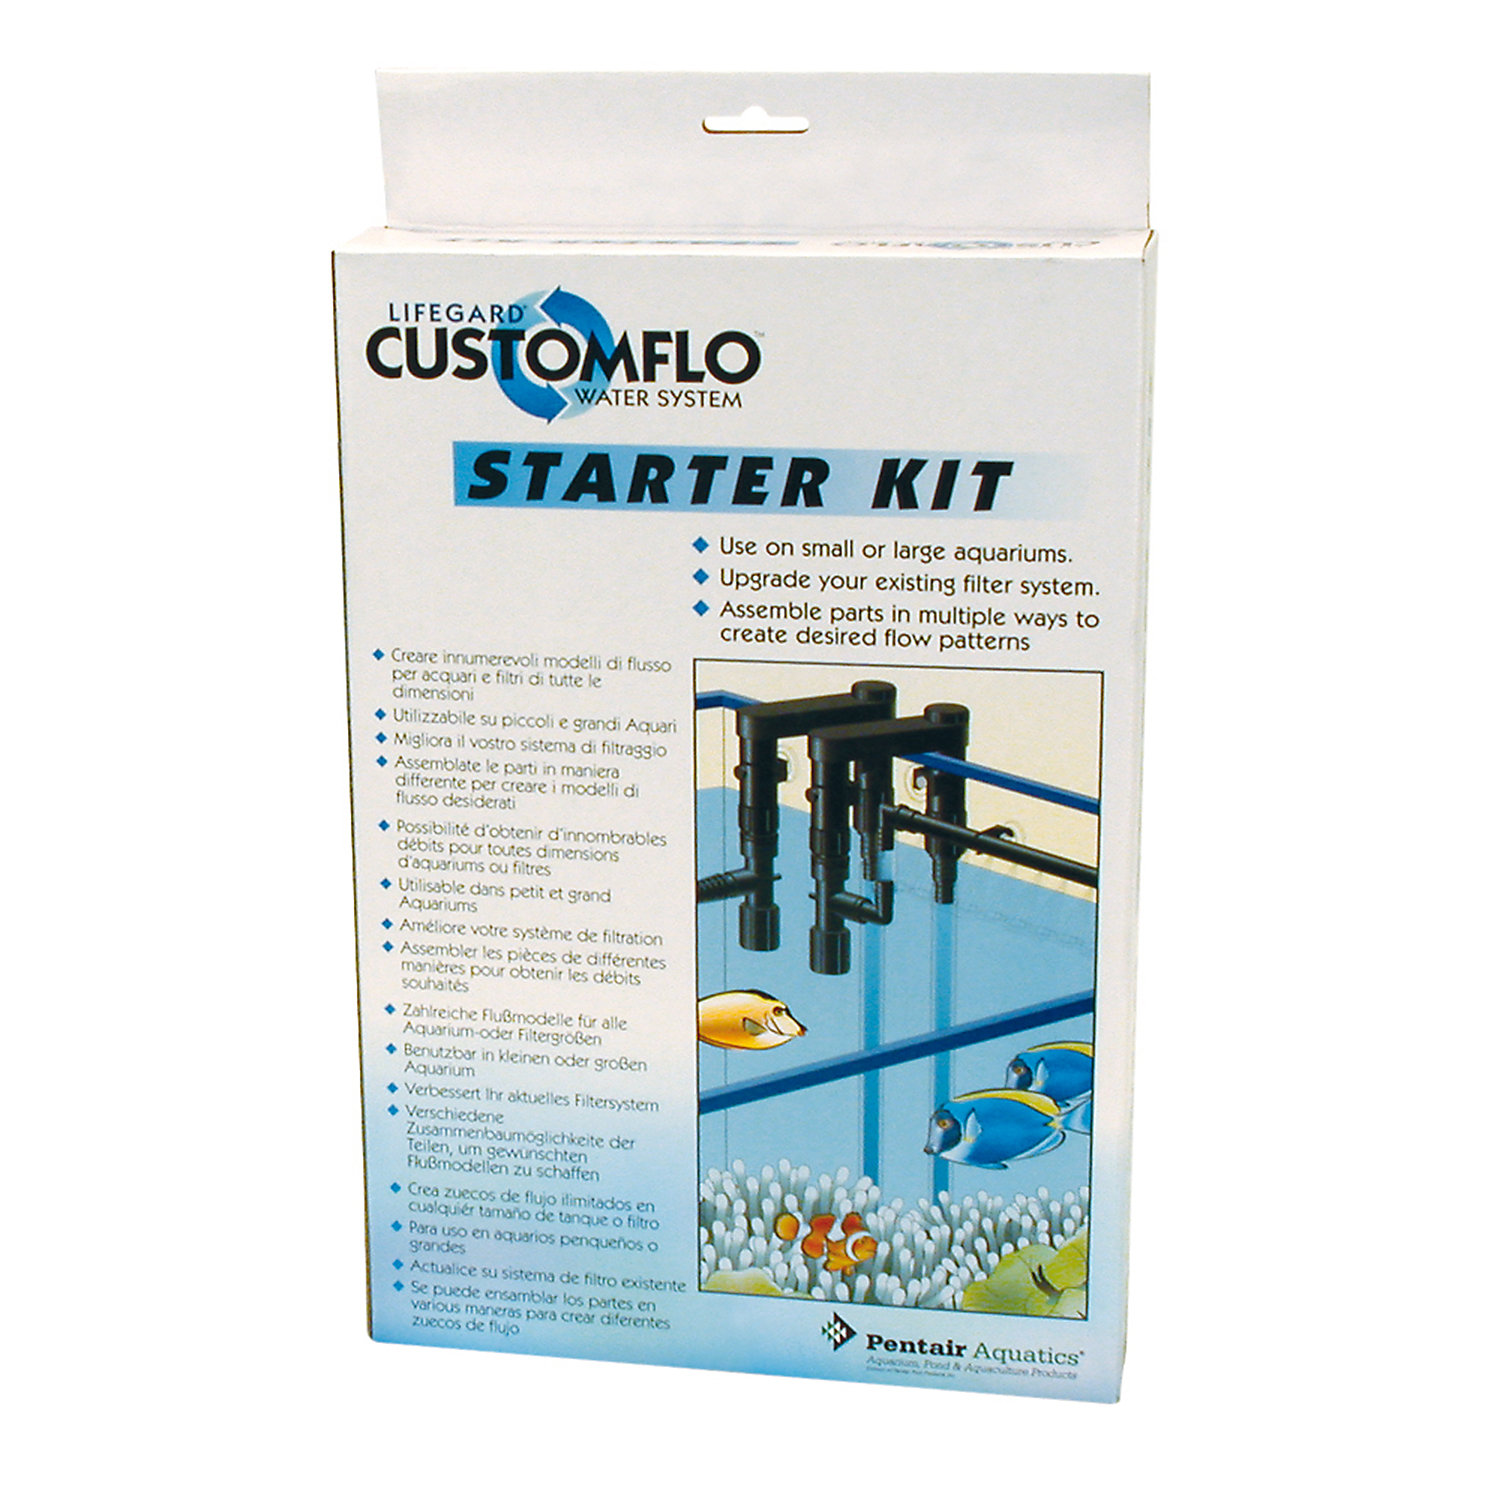 Lifegard Aquatics Customflo Water System Starter Kit